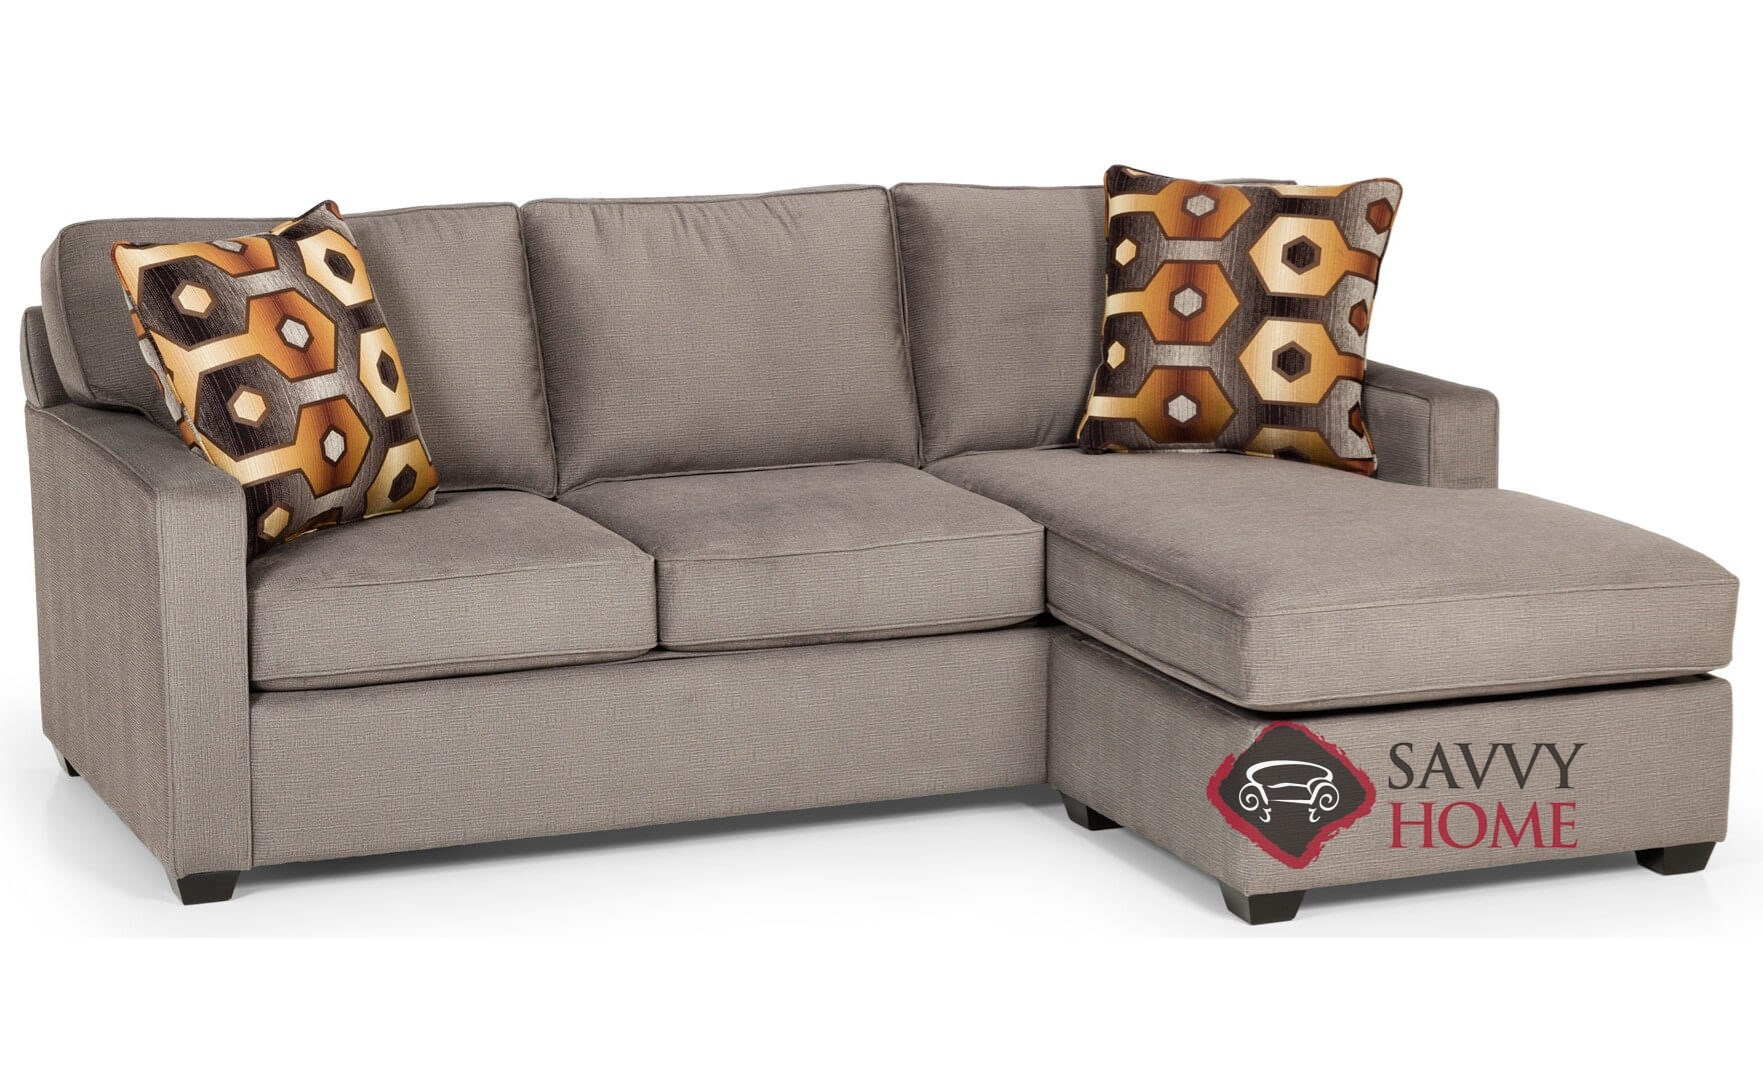 Marvelous The 403 Chaise Sectional Sofa With Storage By Stanton Caraccident5 Cool Chair Designs And Ideas Caraccident5Info